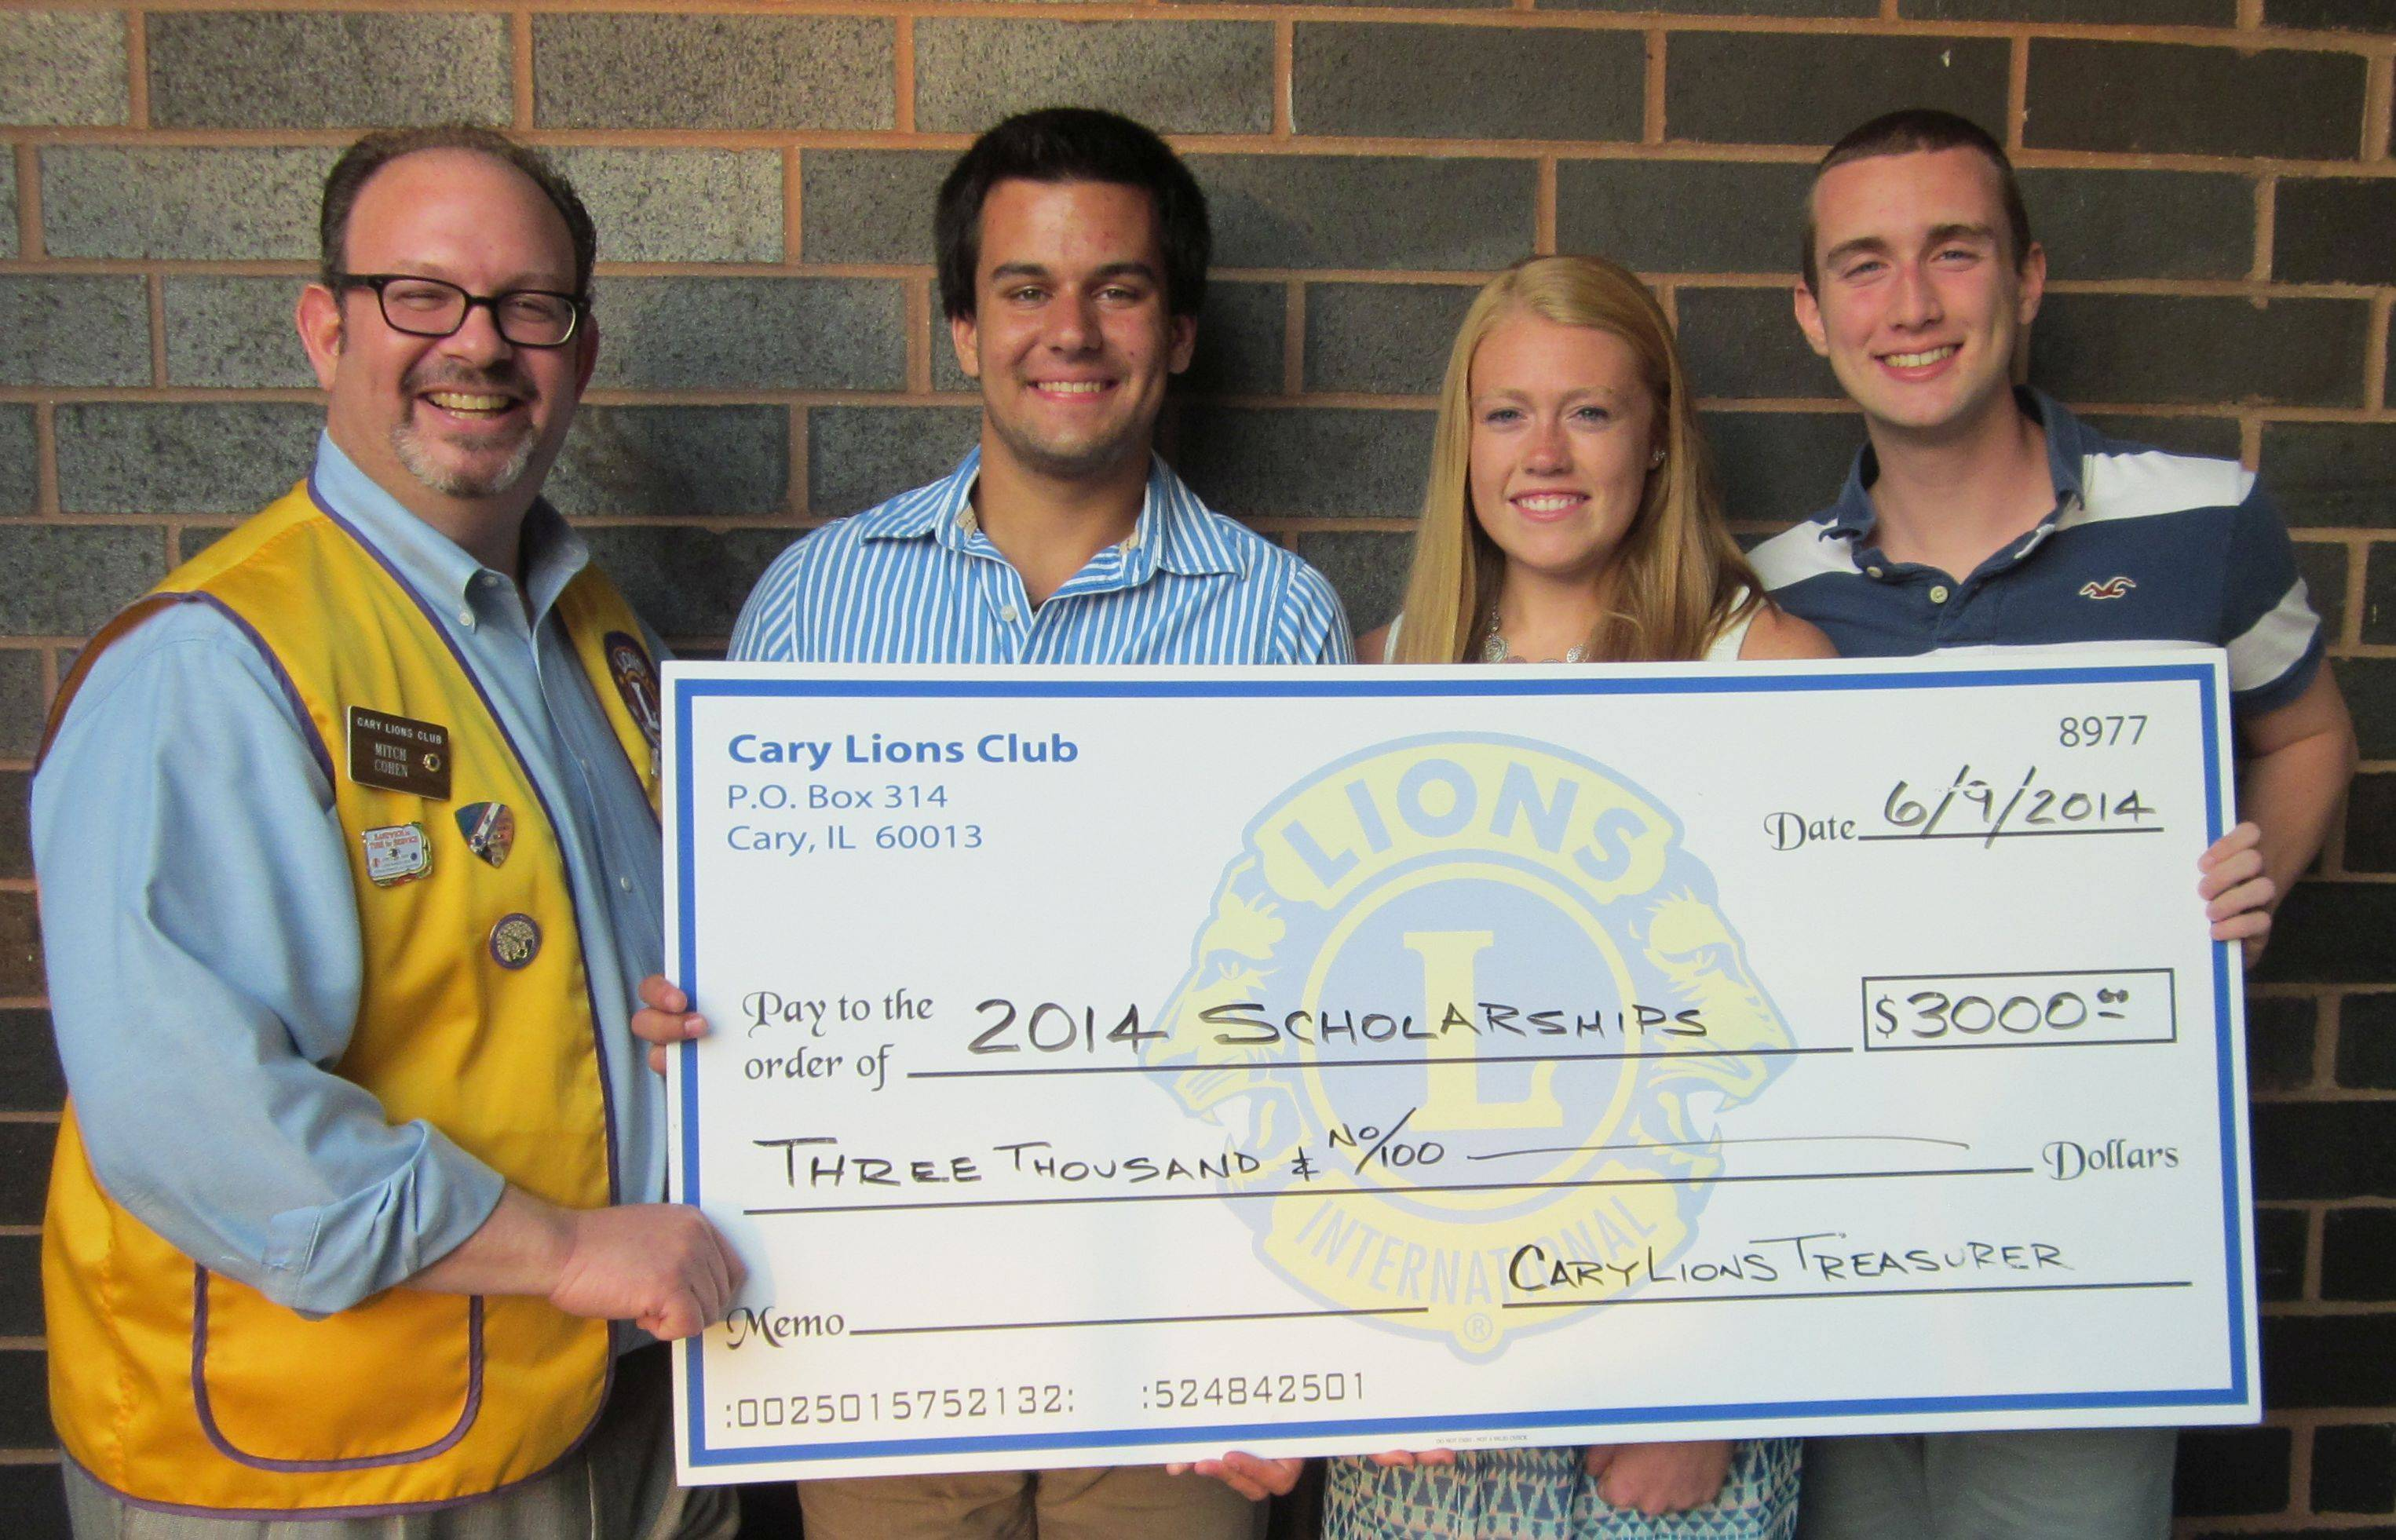 Cary Lion scholarship chairman Mitch Cohen congratulates winners Samuel Rita, Sarah Kendeigh and Griffin Dempsey.